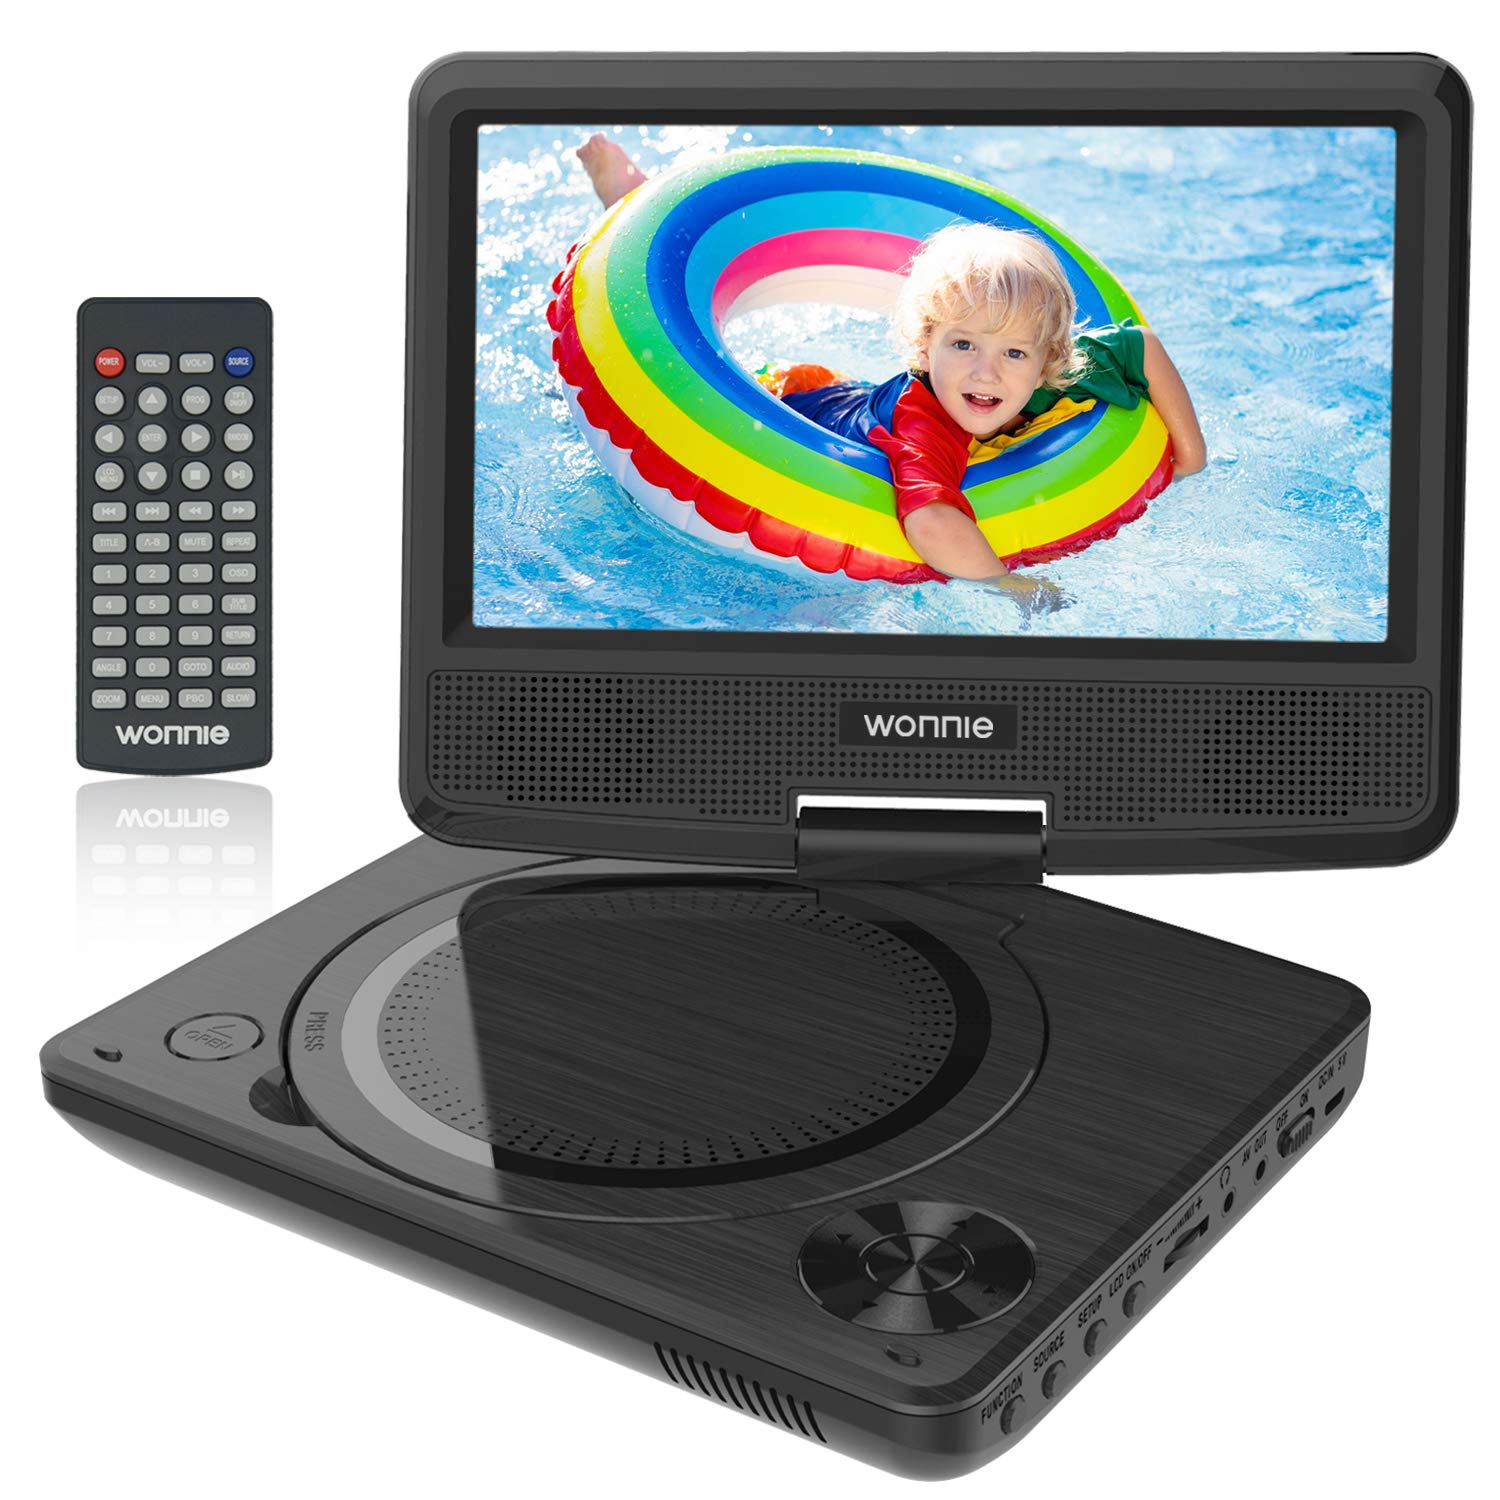 WONNIE 9.5'' Kids Portable DVD Player with 7.5 inch Swivel Screen, Rechargeable Battery, Remote Control, Personal DVD Player for Car, Support USB / SD Card Reader( Black)